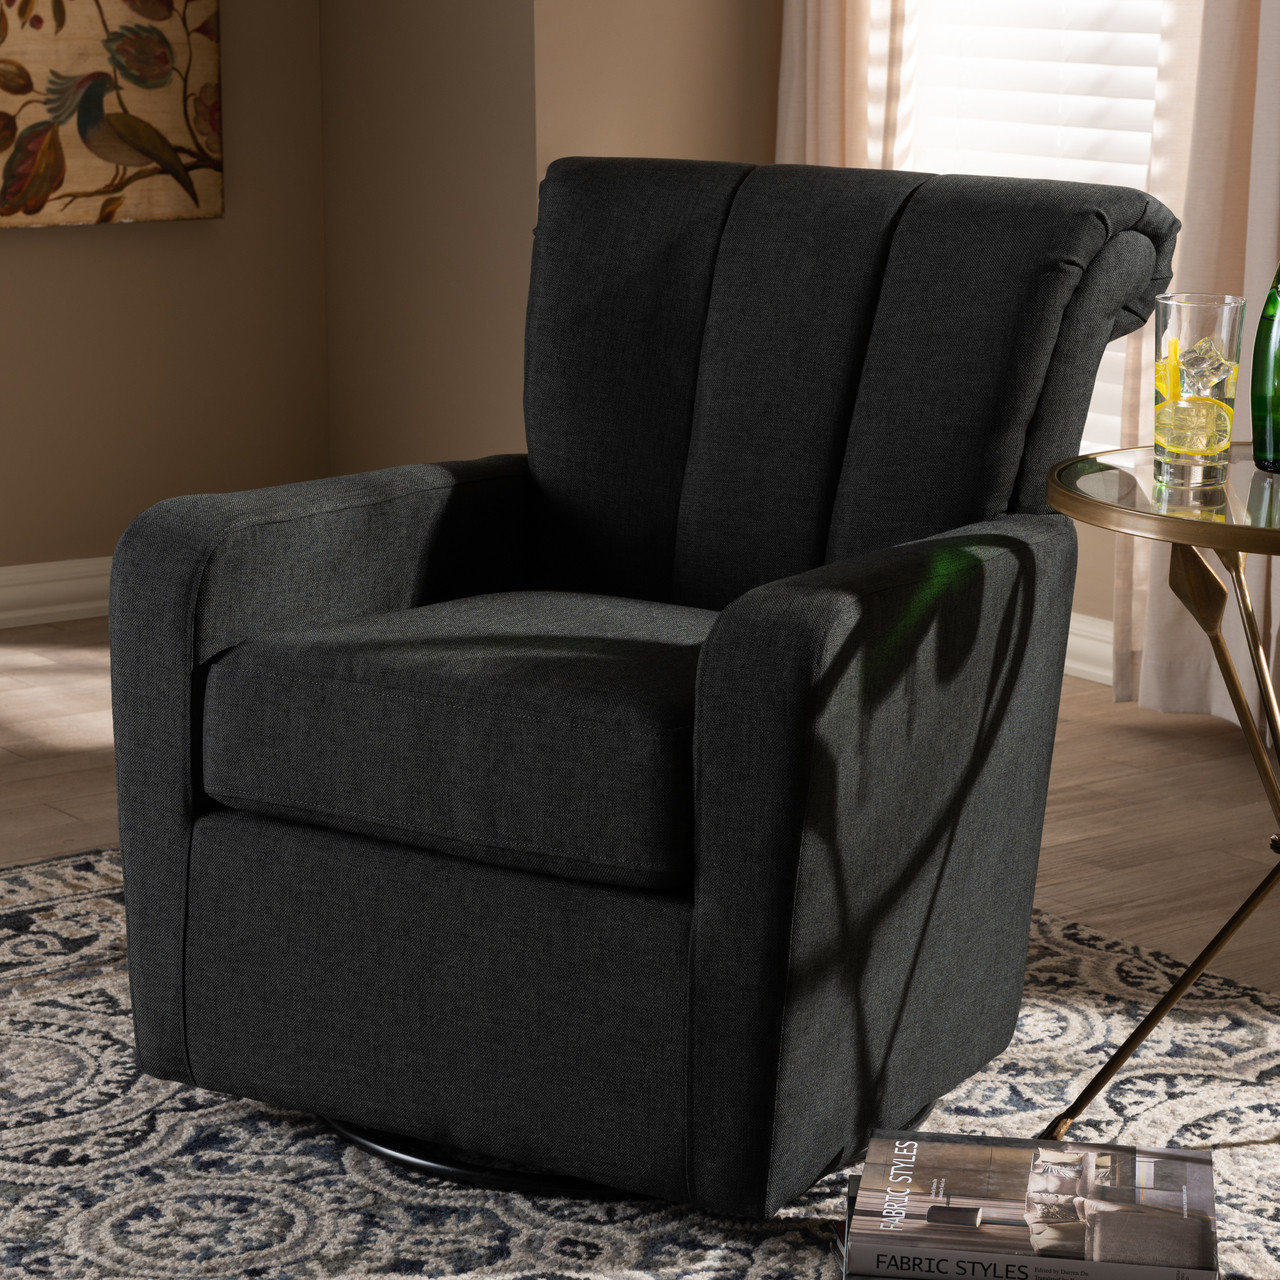 Upholstered Swivel Chairs Baxton Studio Rayner Modern And Contemporary Gray Fabric Upholstered Swivel Chair